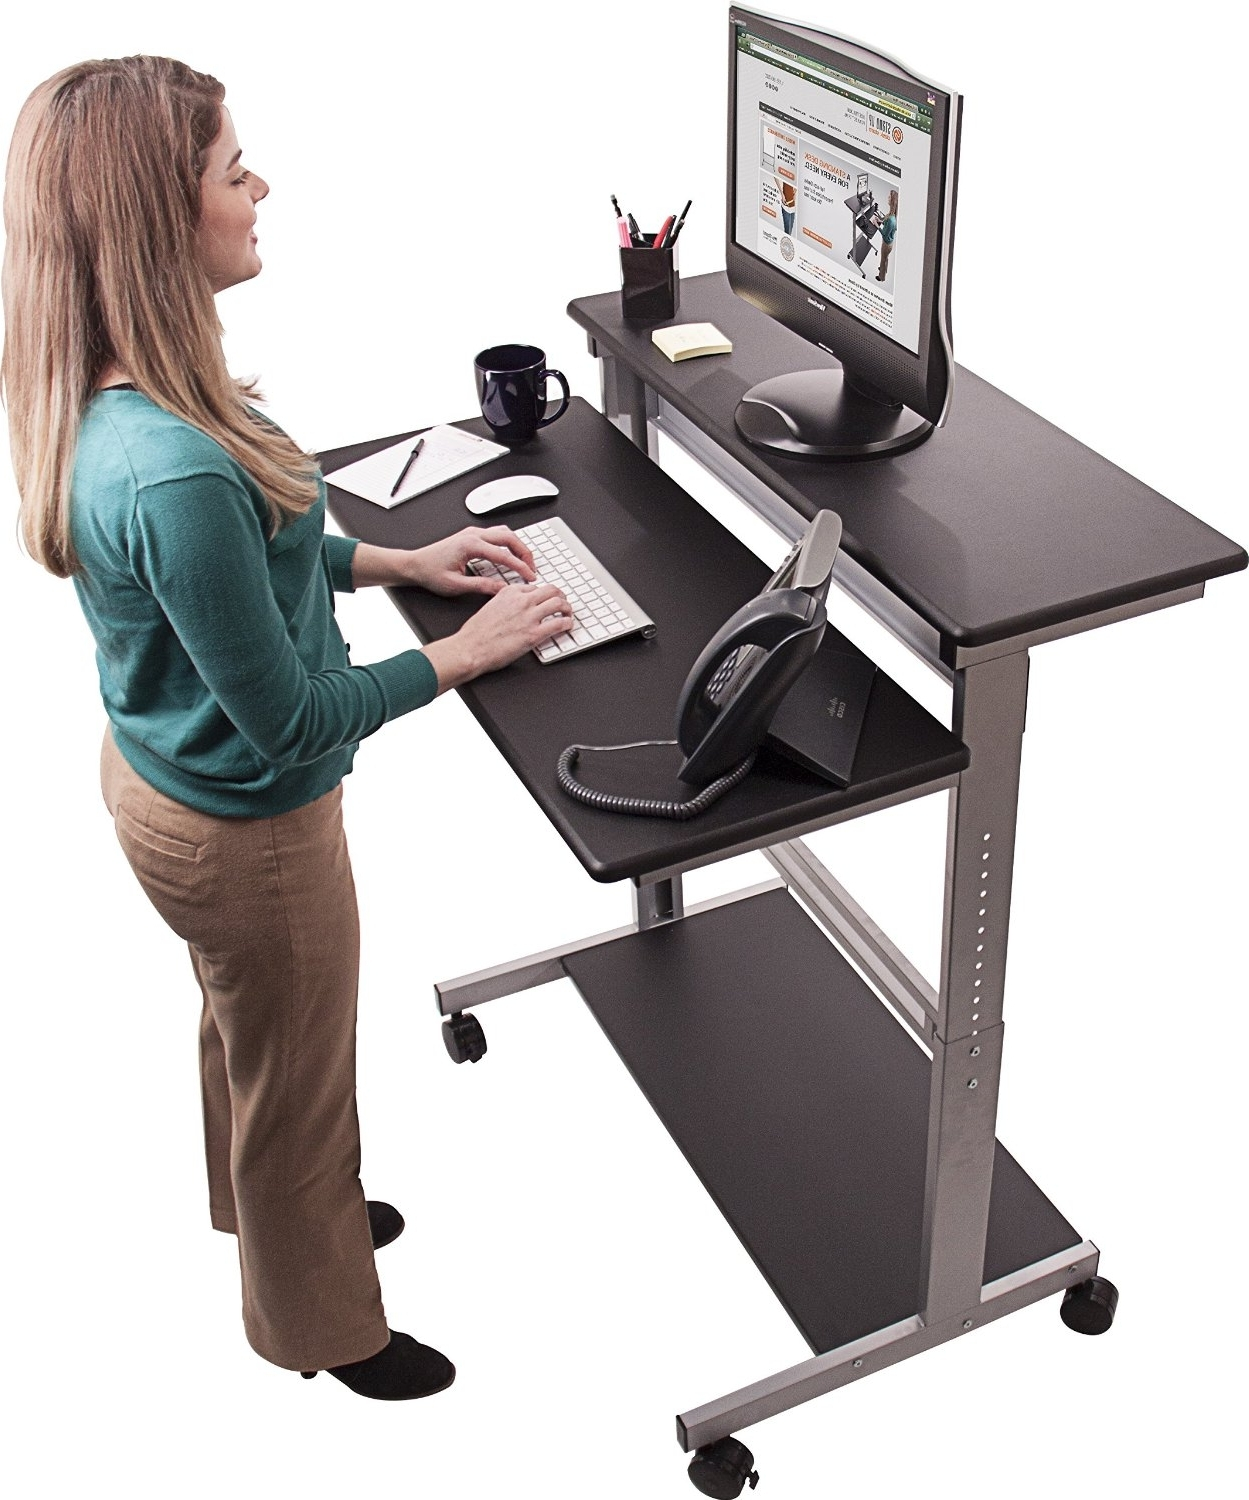 "Amazon: 40"" Black Shelves Mobile Ergonomic Stand Up Desk With Most Current Standing Computer Desks (View 4 of 20)"